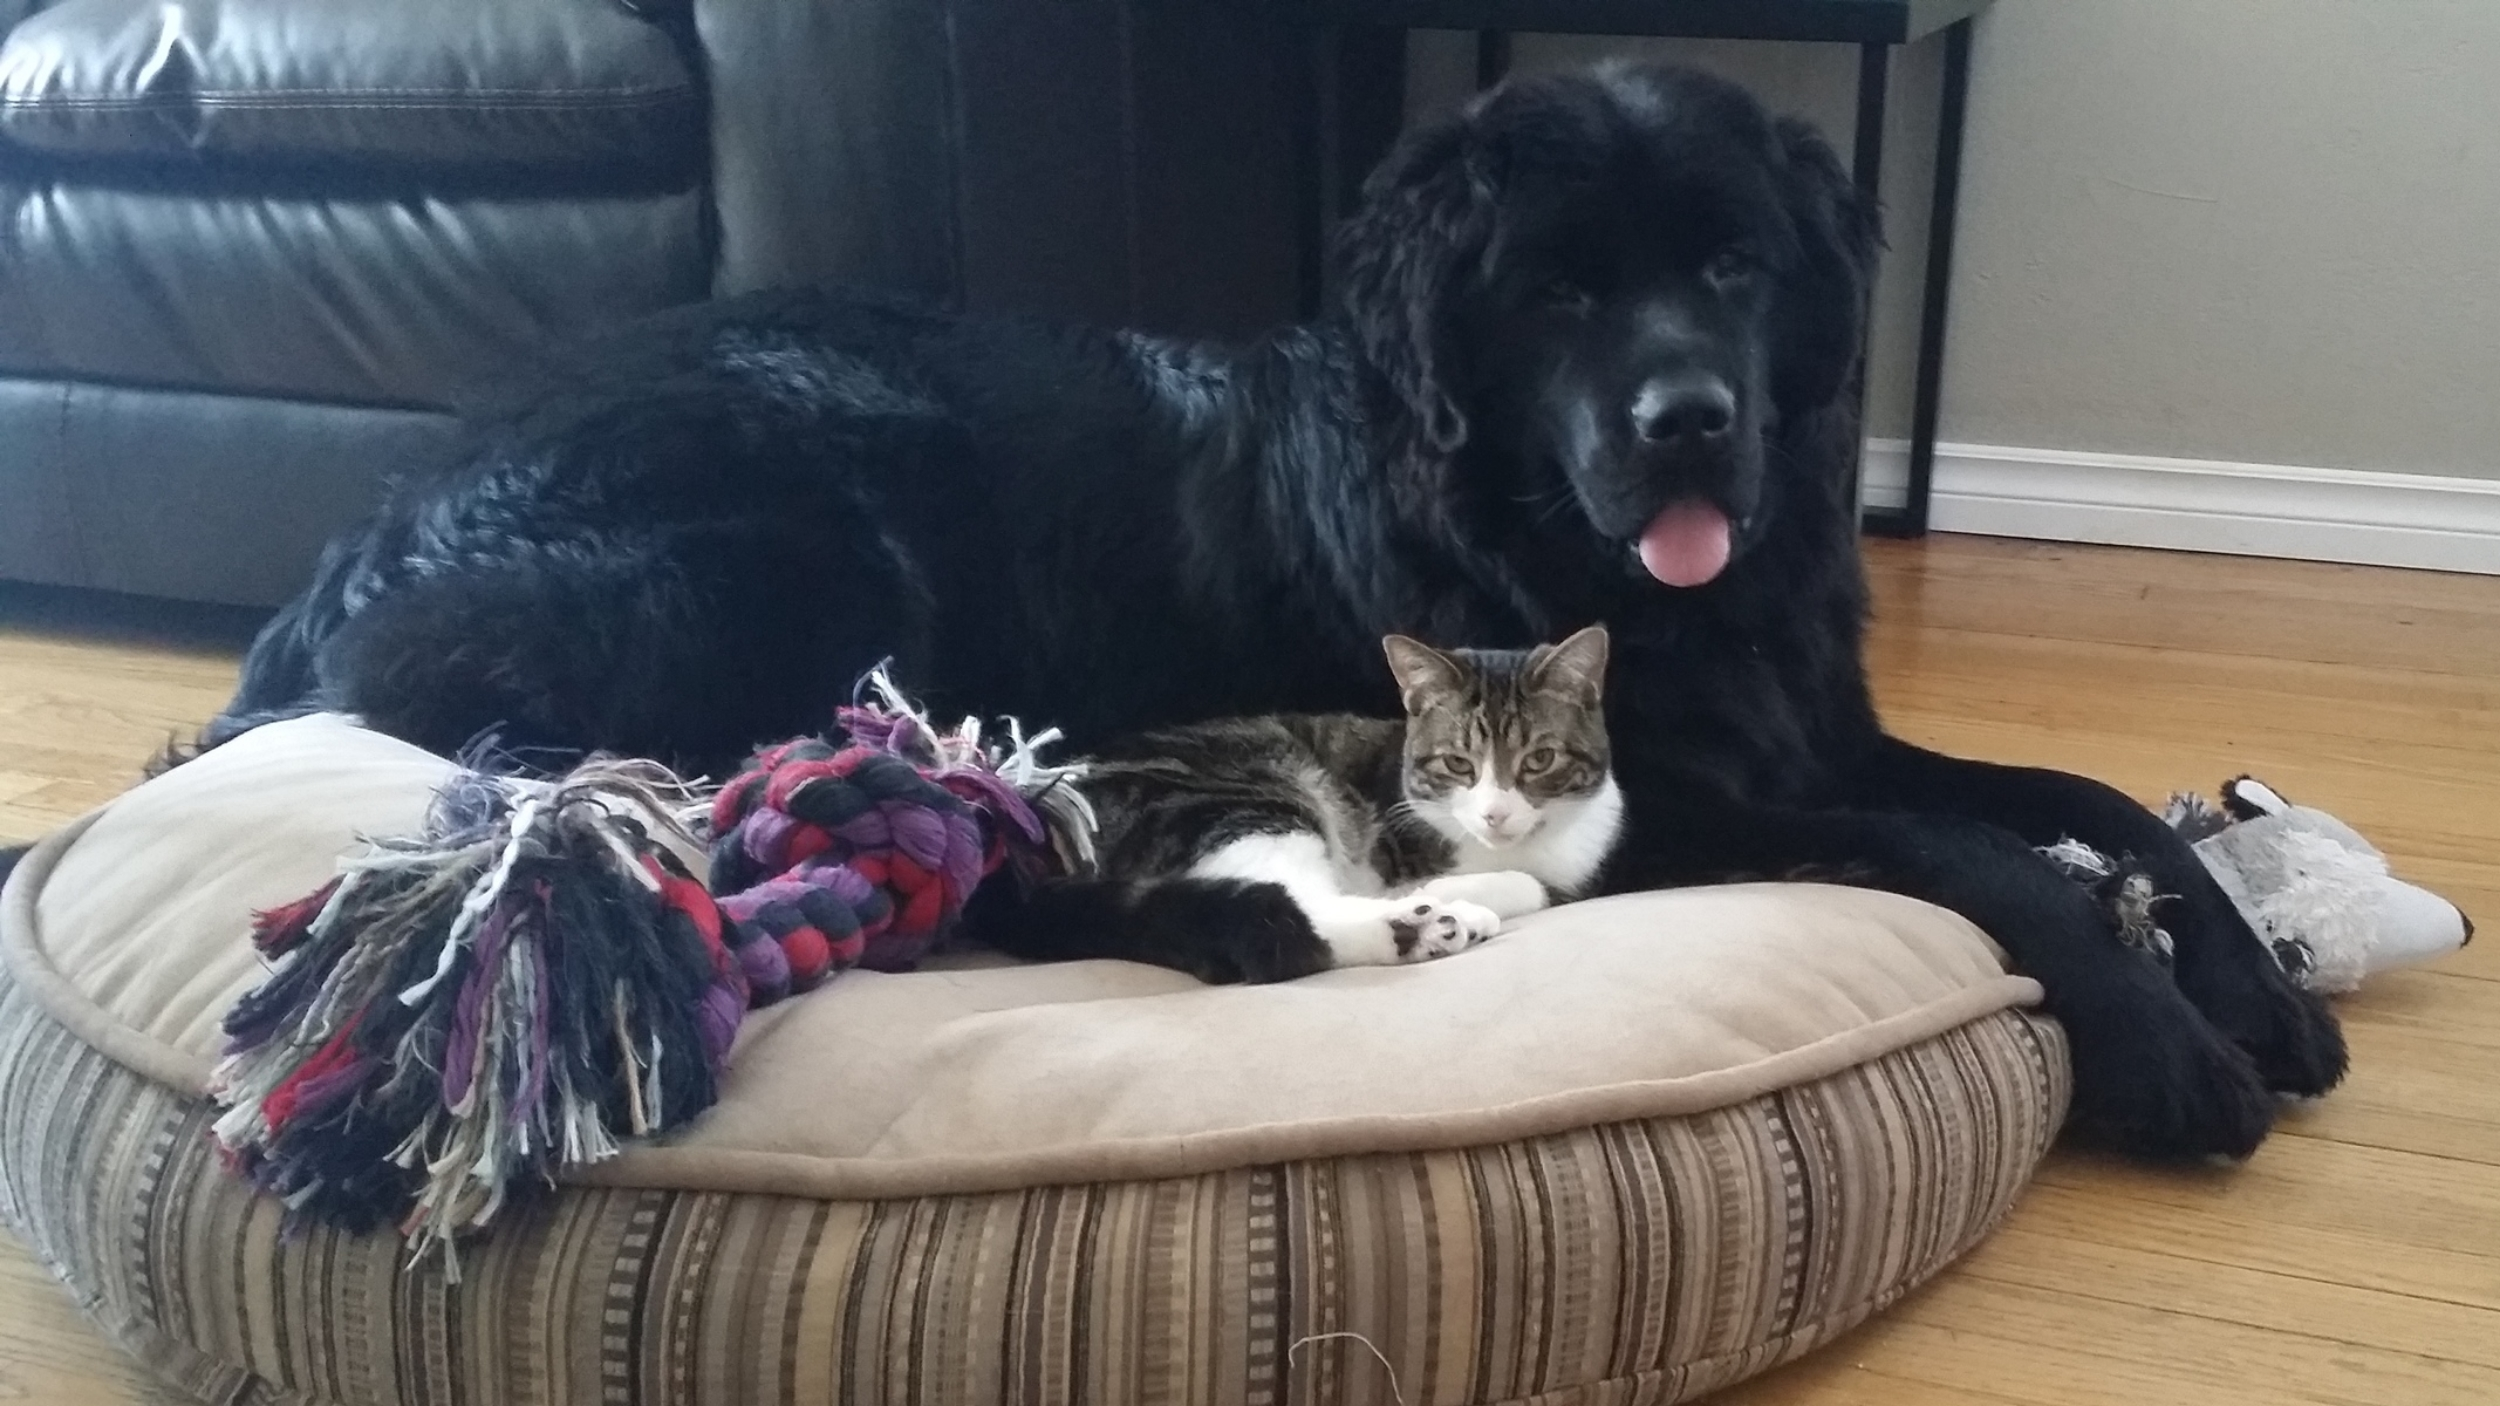 Sharing the dog bed